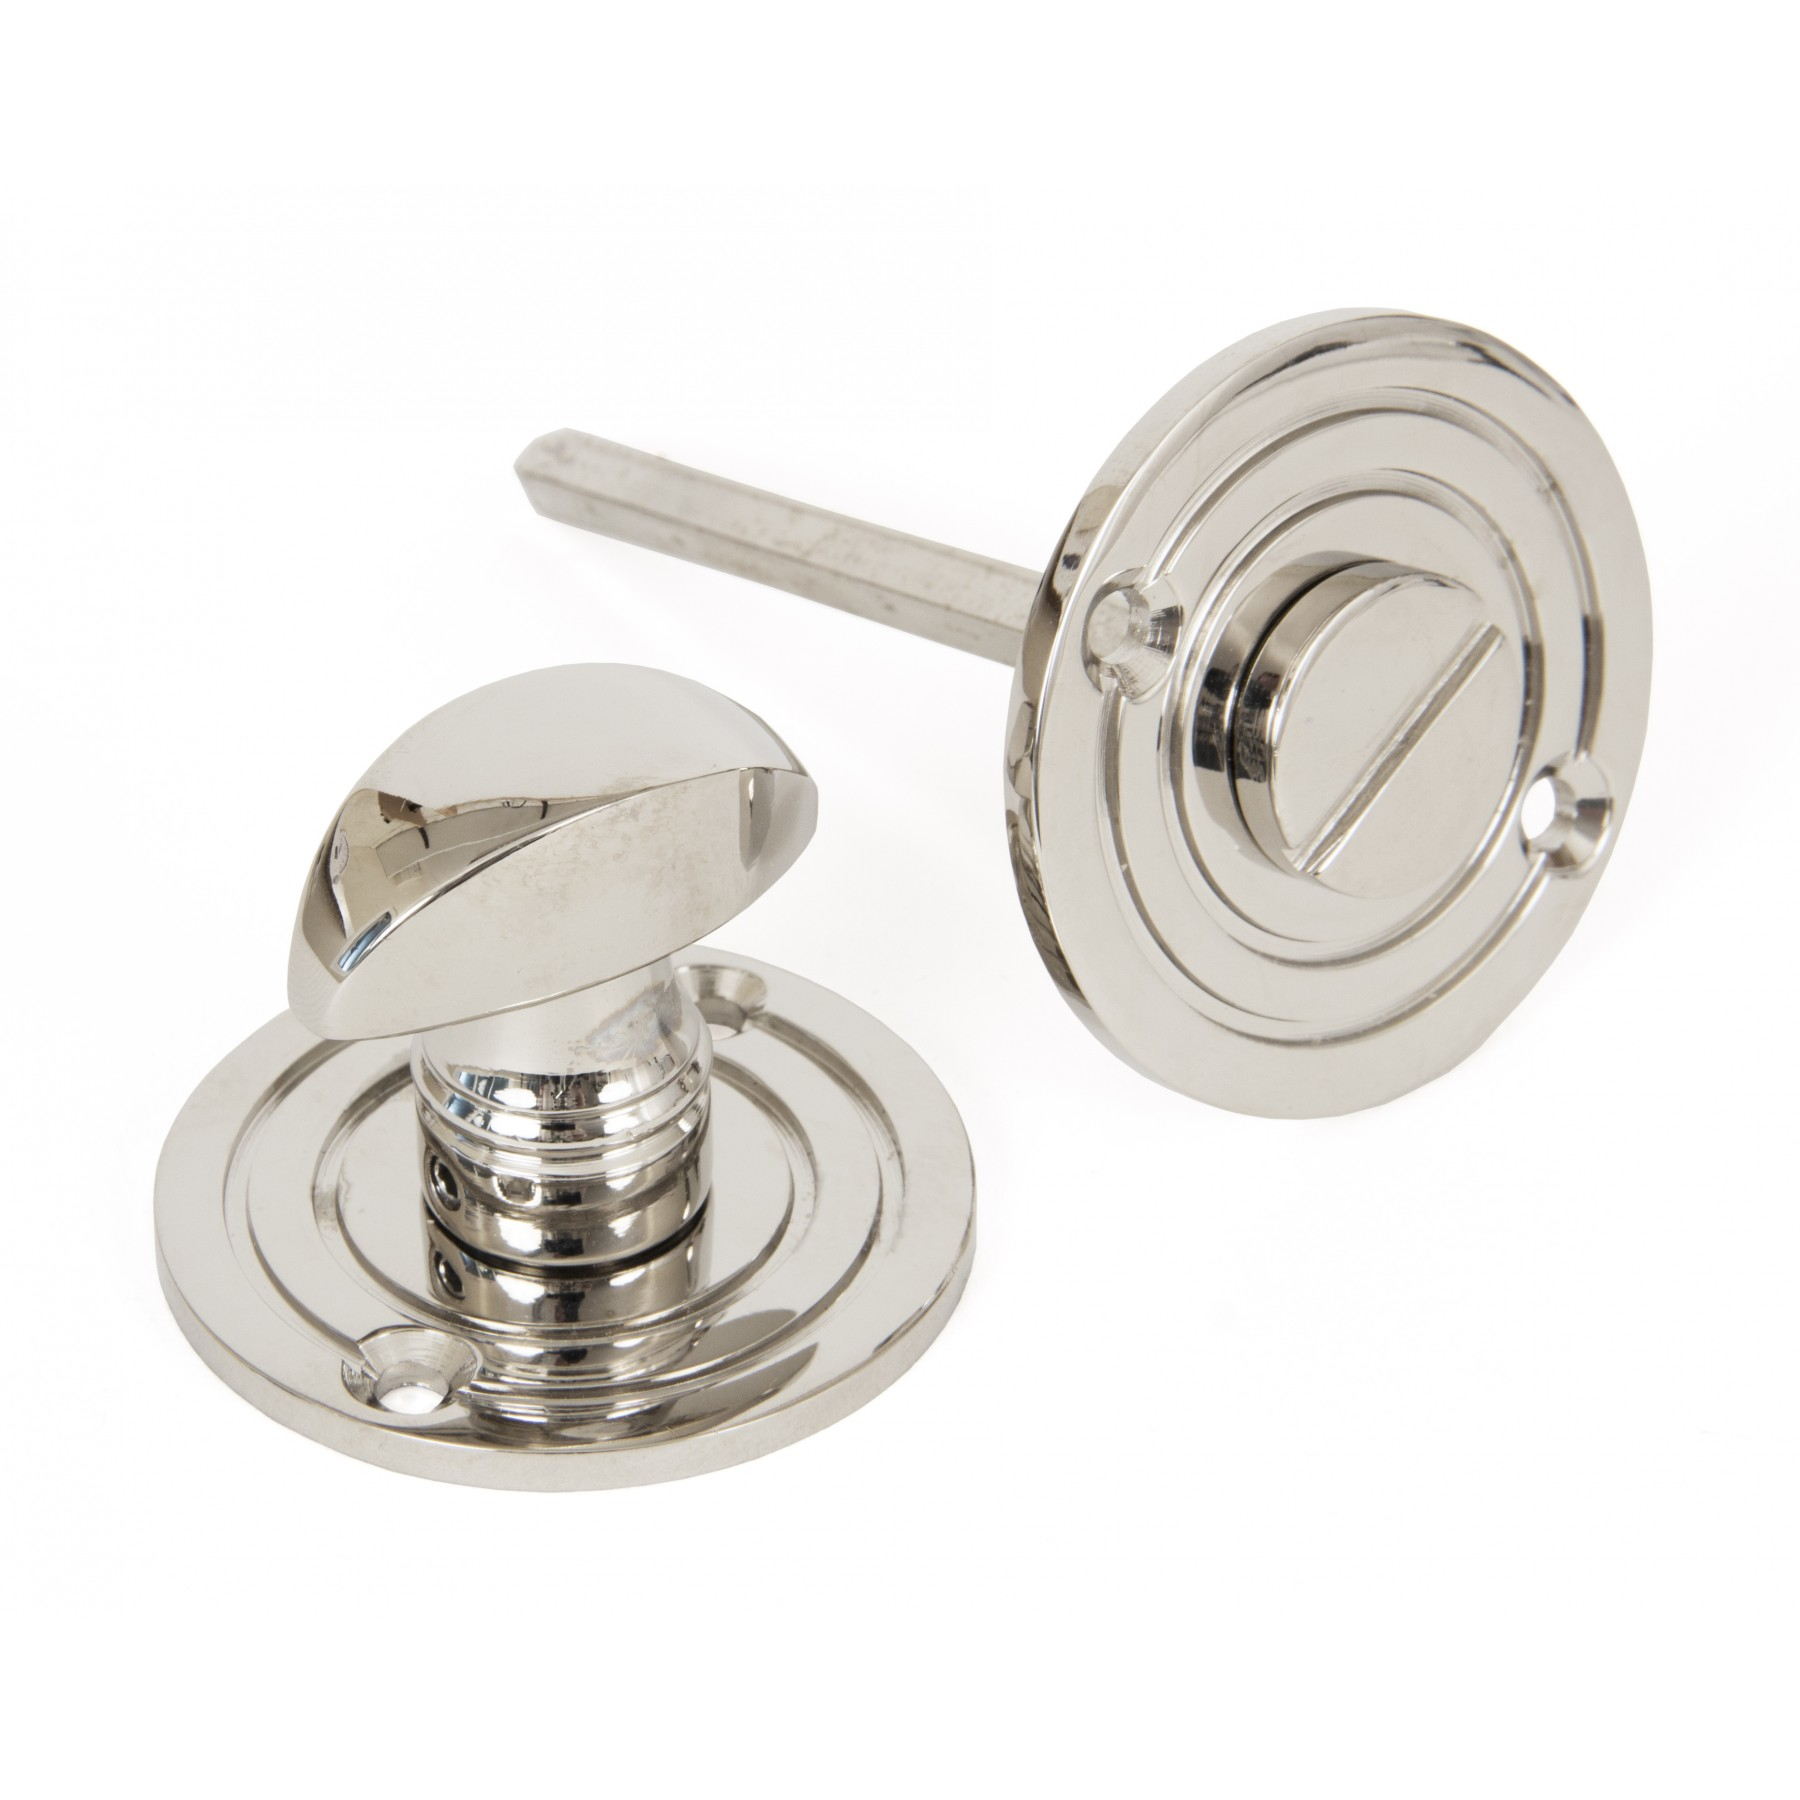 Polished Nickel Round Bathroom Thumbturn Period Home Style